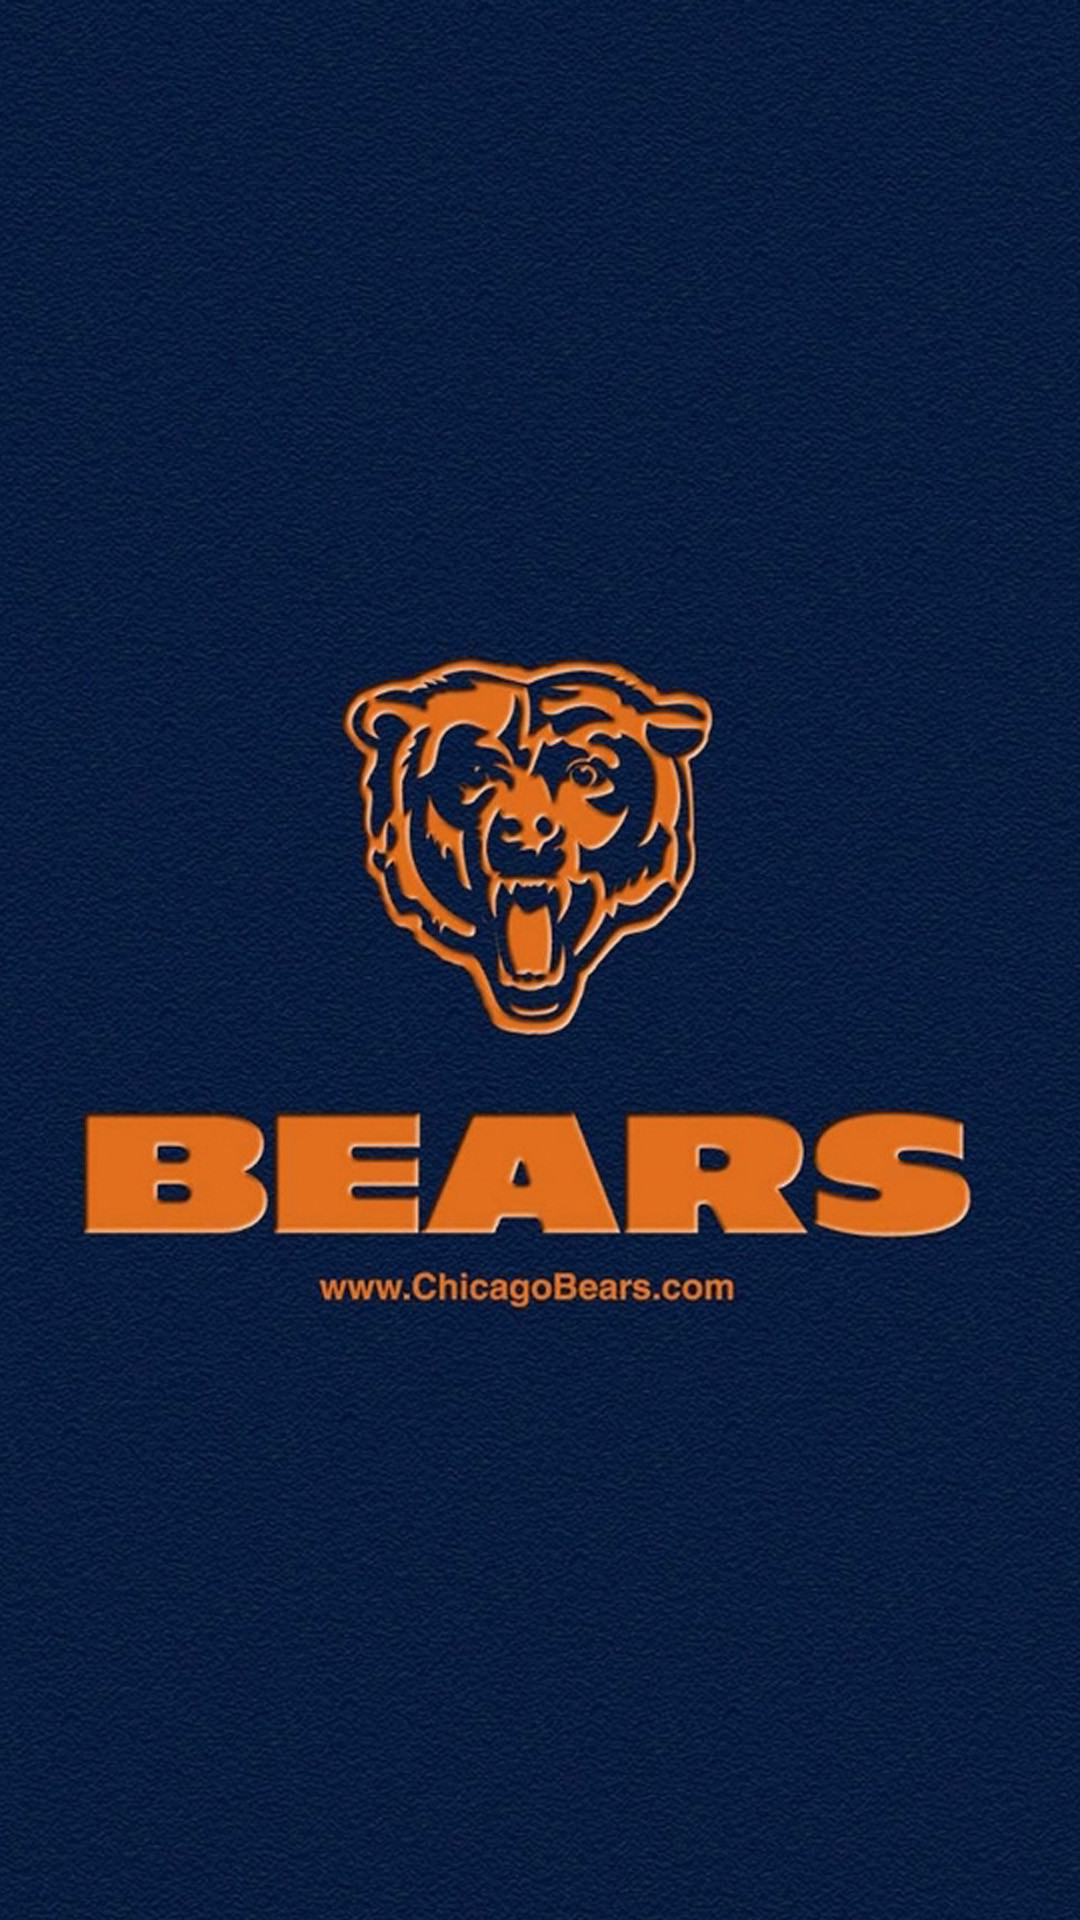 … chicago bears wallpaper for android download image gallery hcpr …